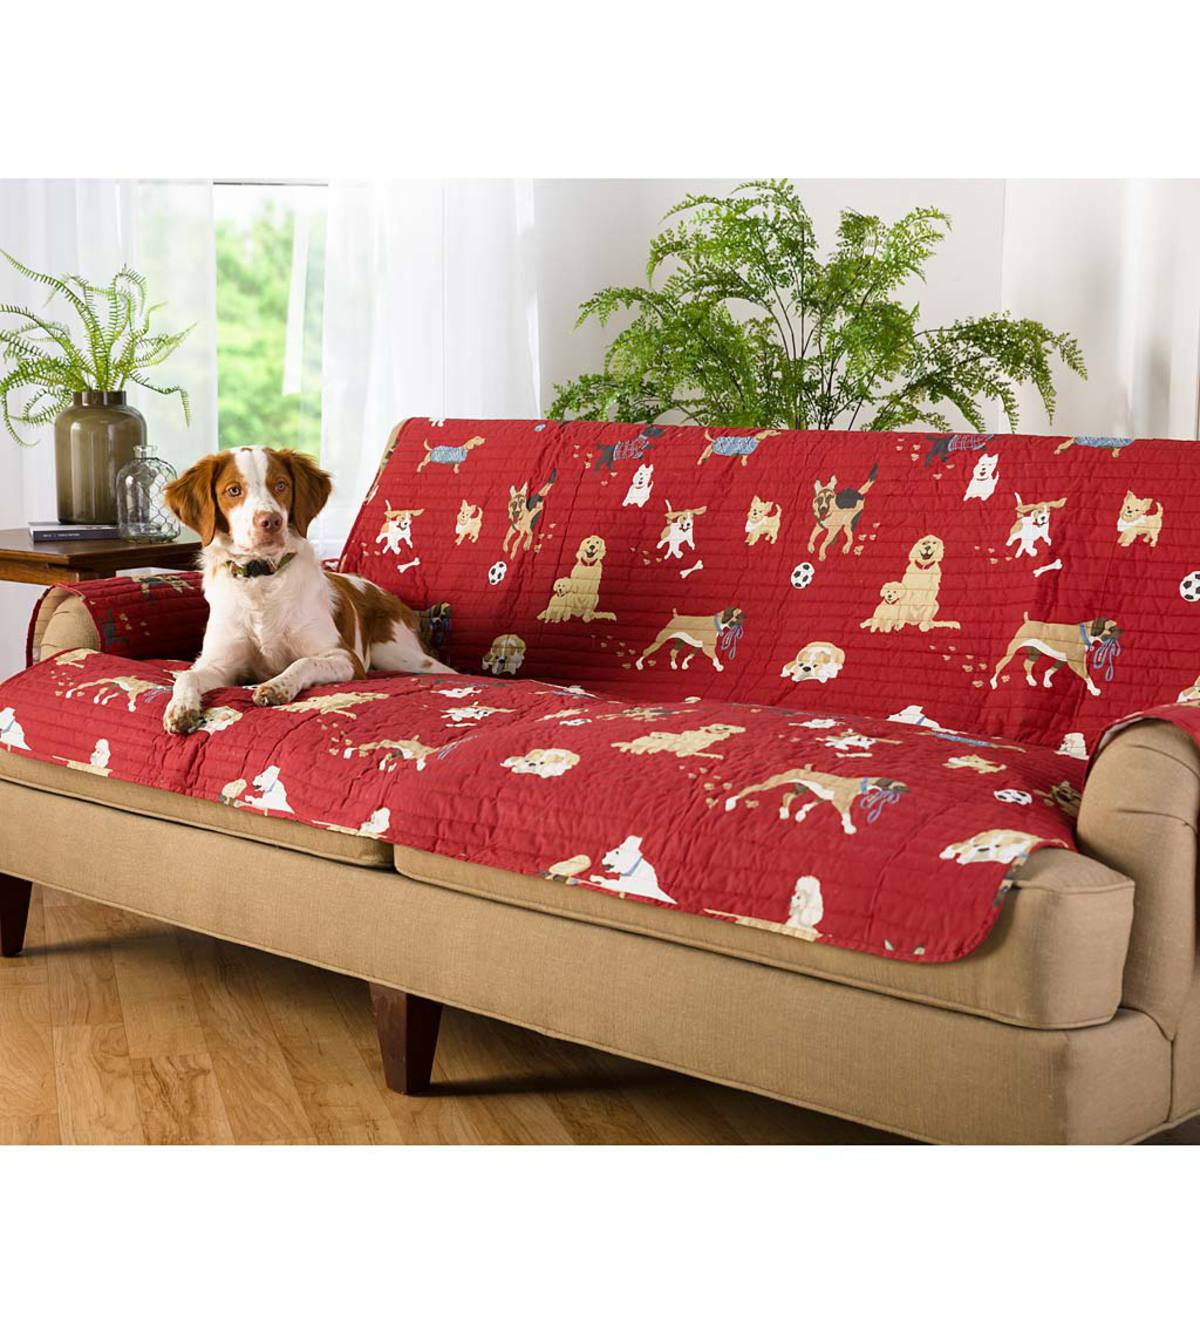 Protective Pet Sofa Cover, Dog Park Design